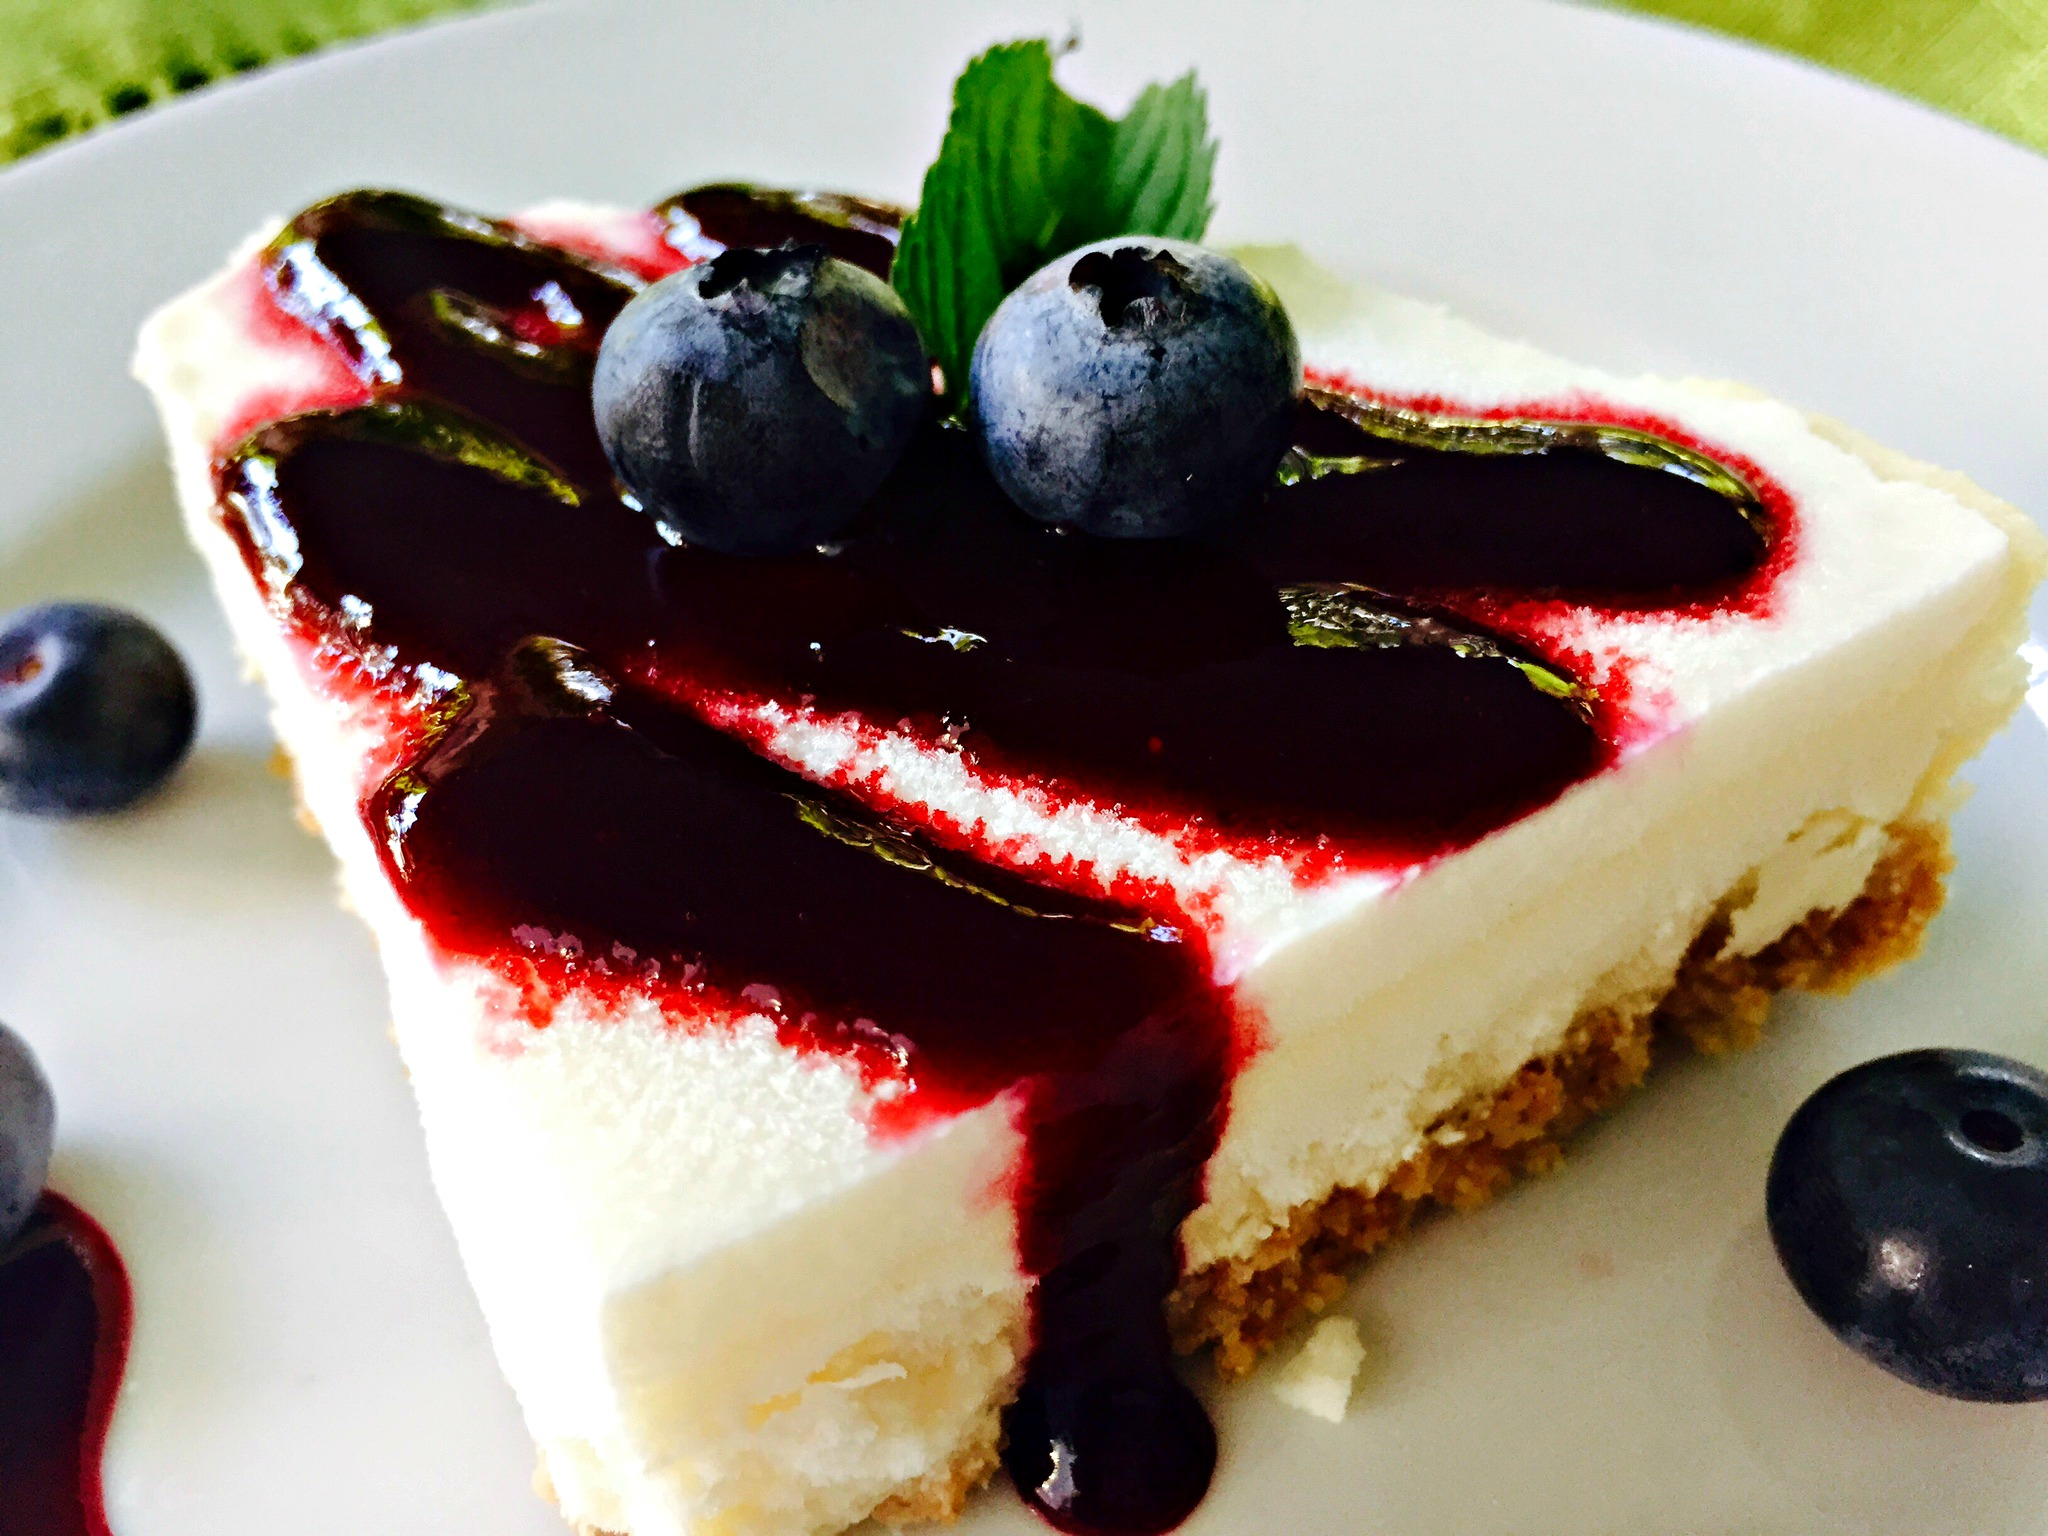 Delicious Cheesecake with Blueberry Sauce